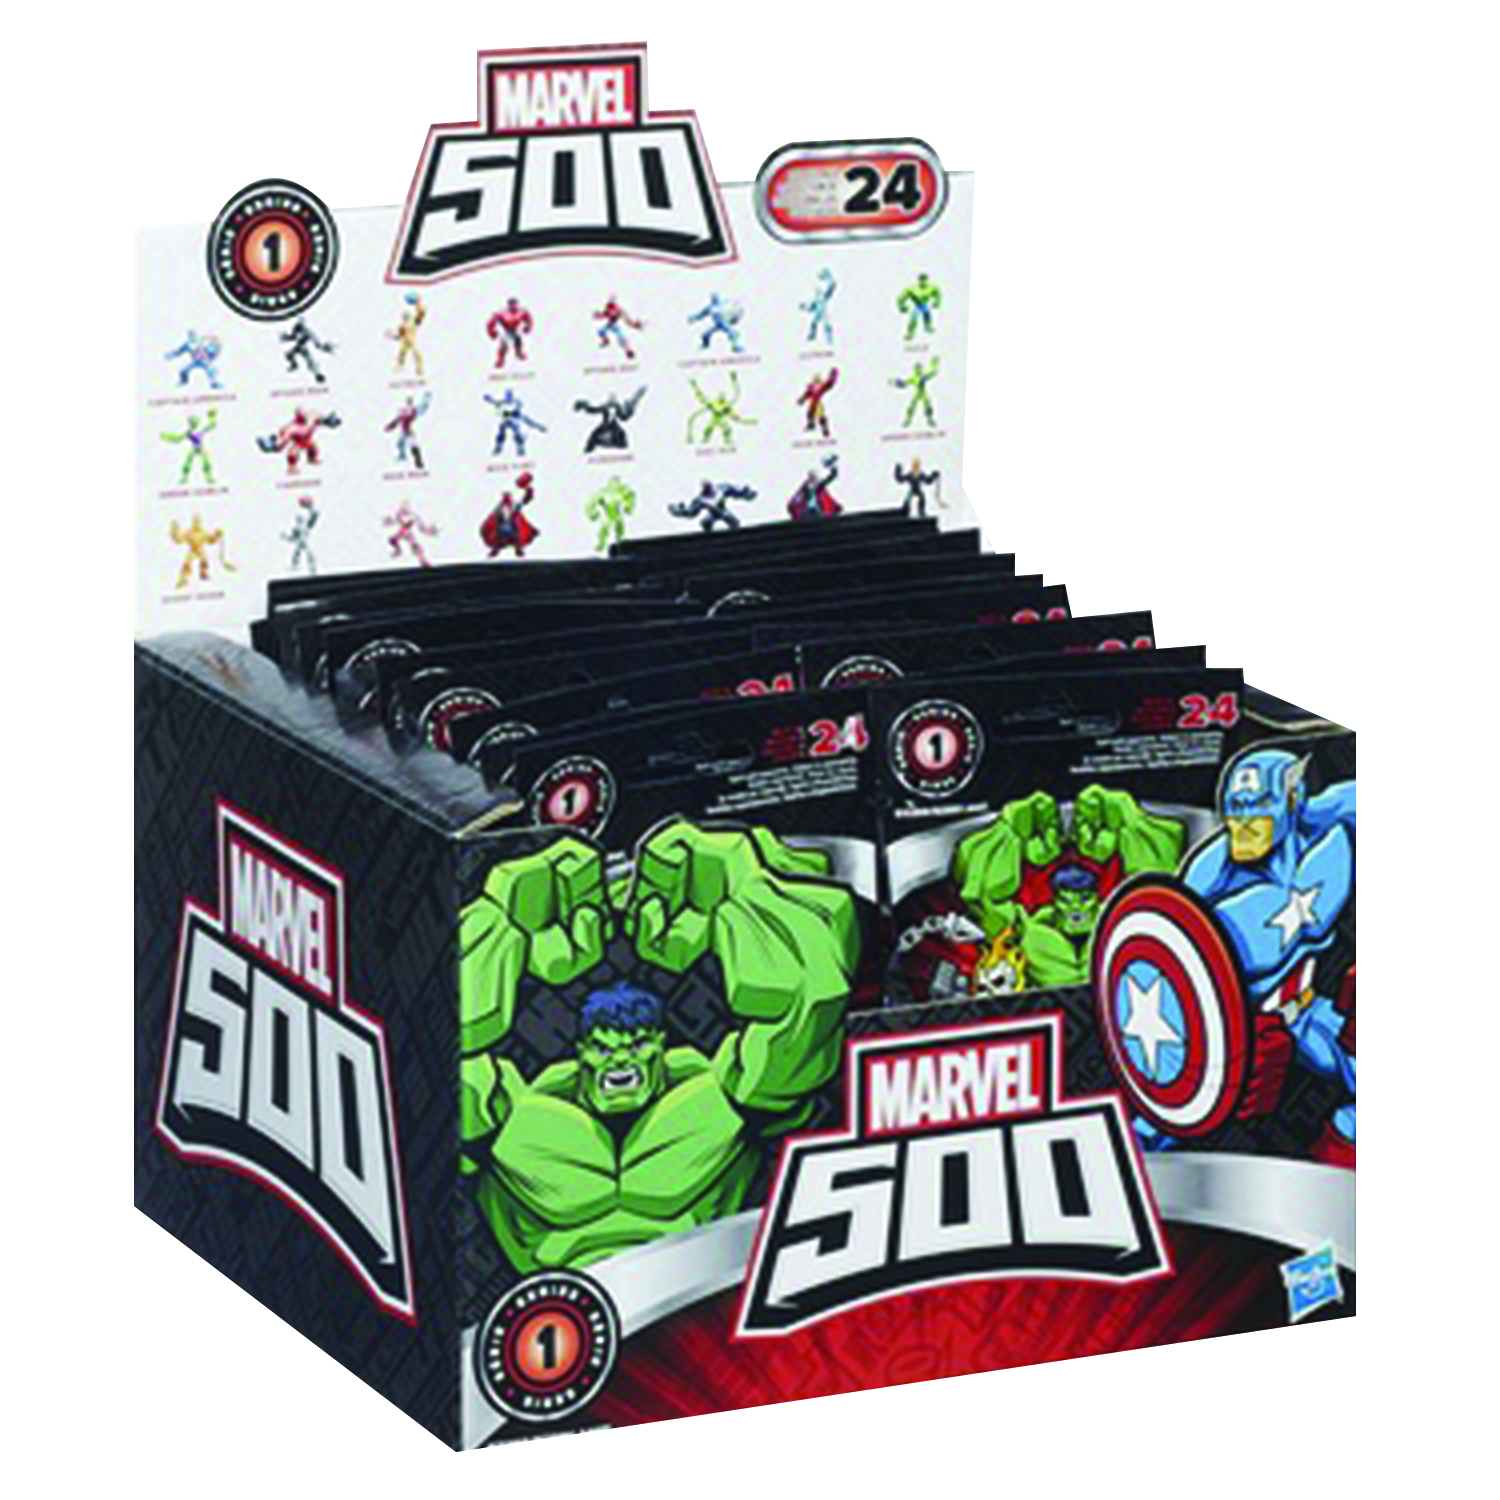 MARVEL 500 2IN COLL FIG BMB DIS 201501